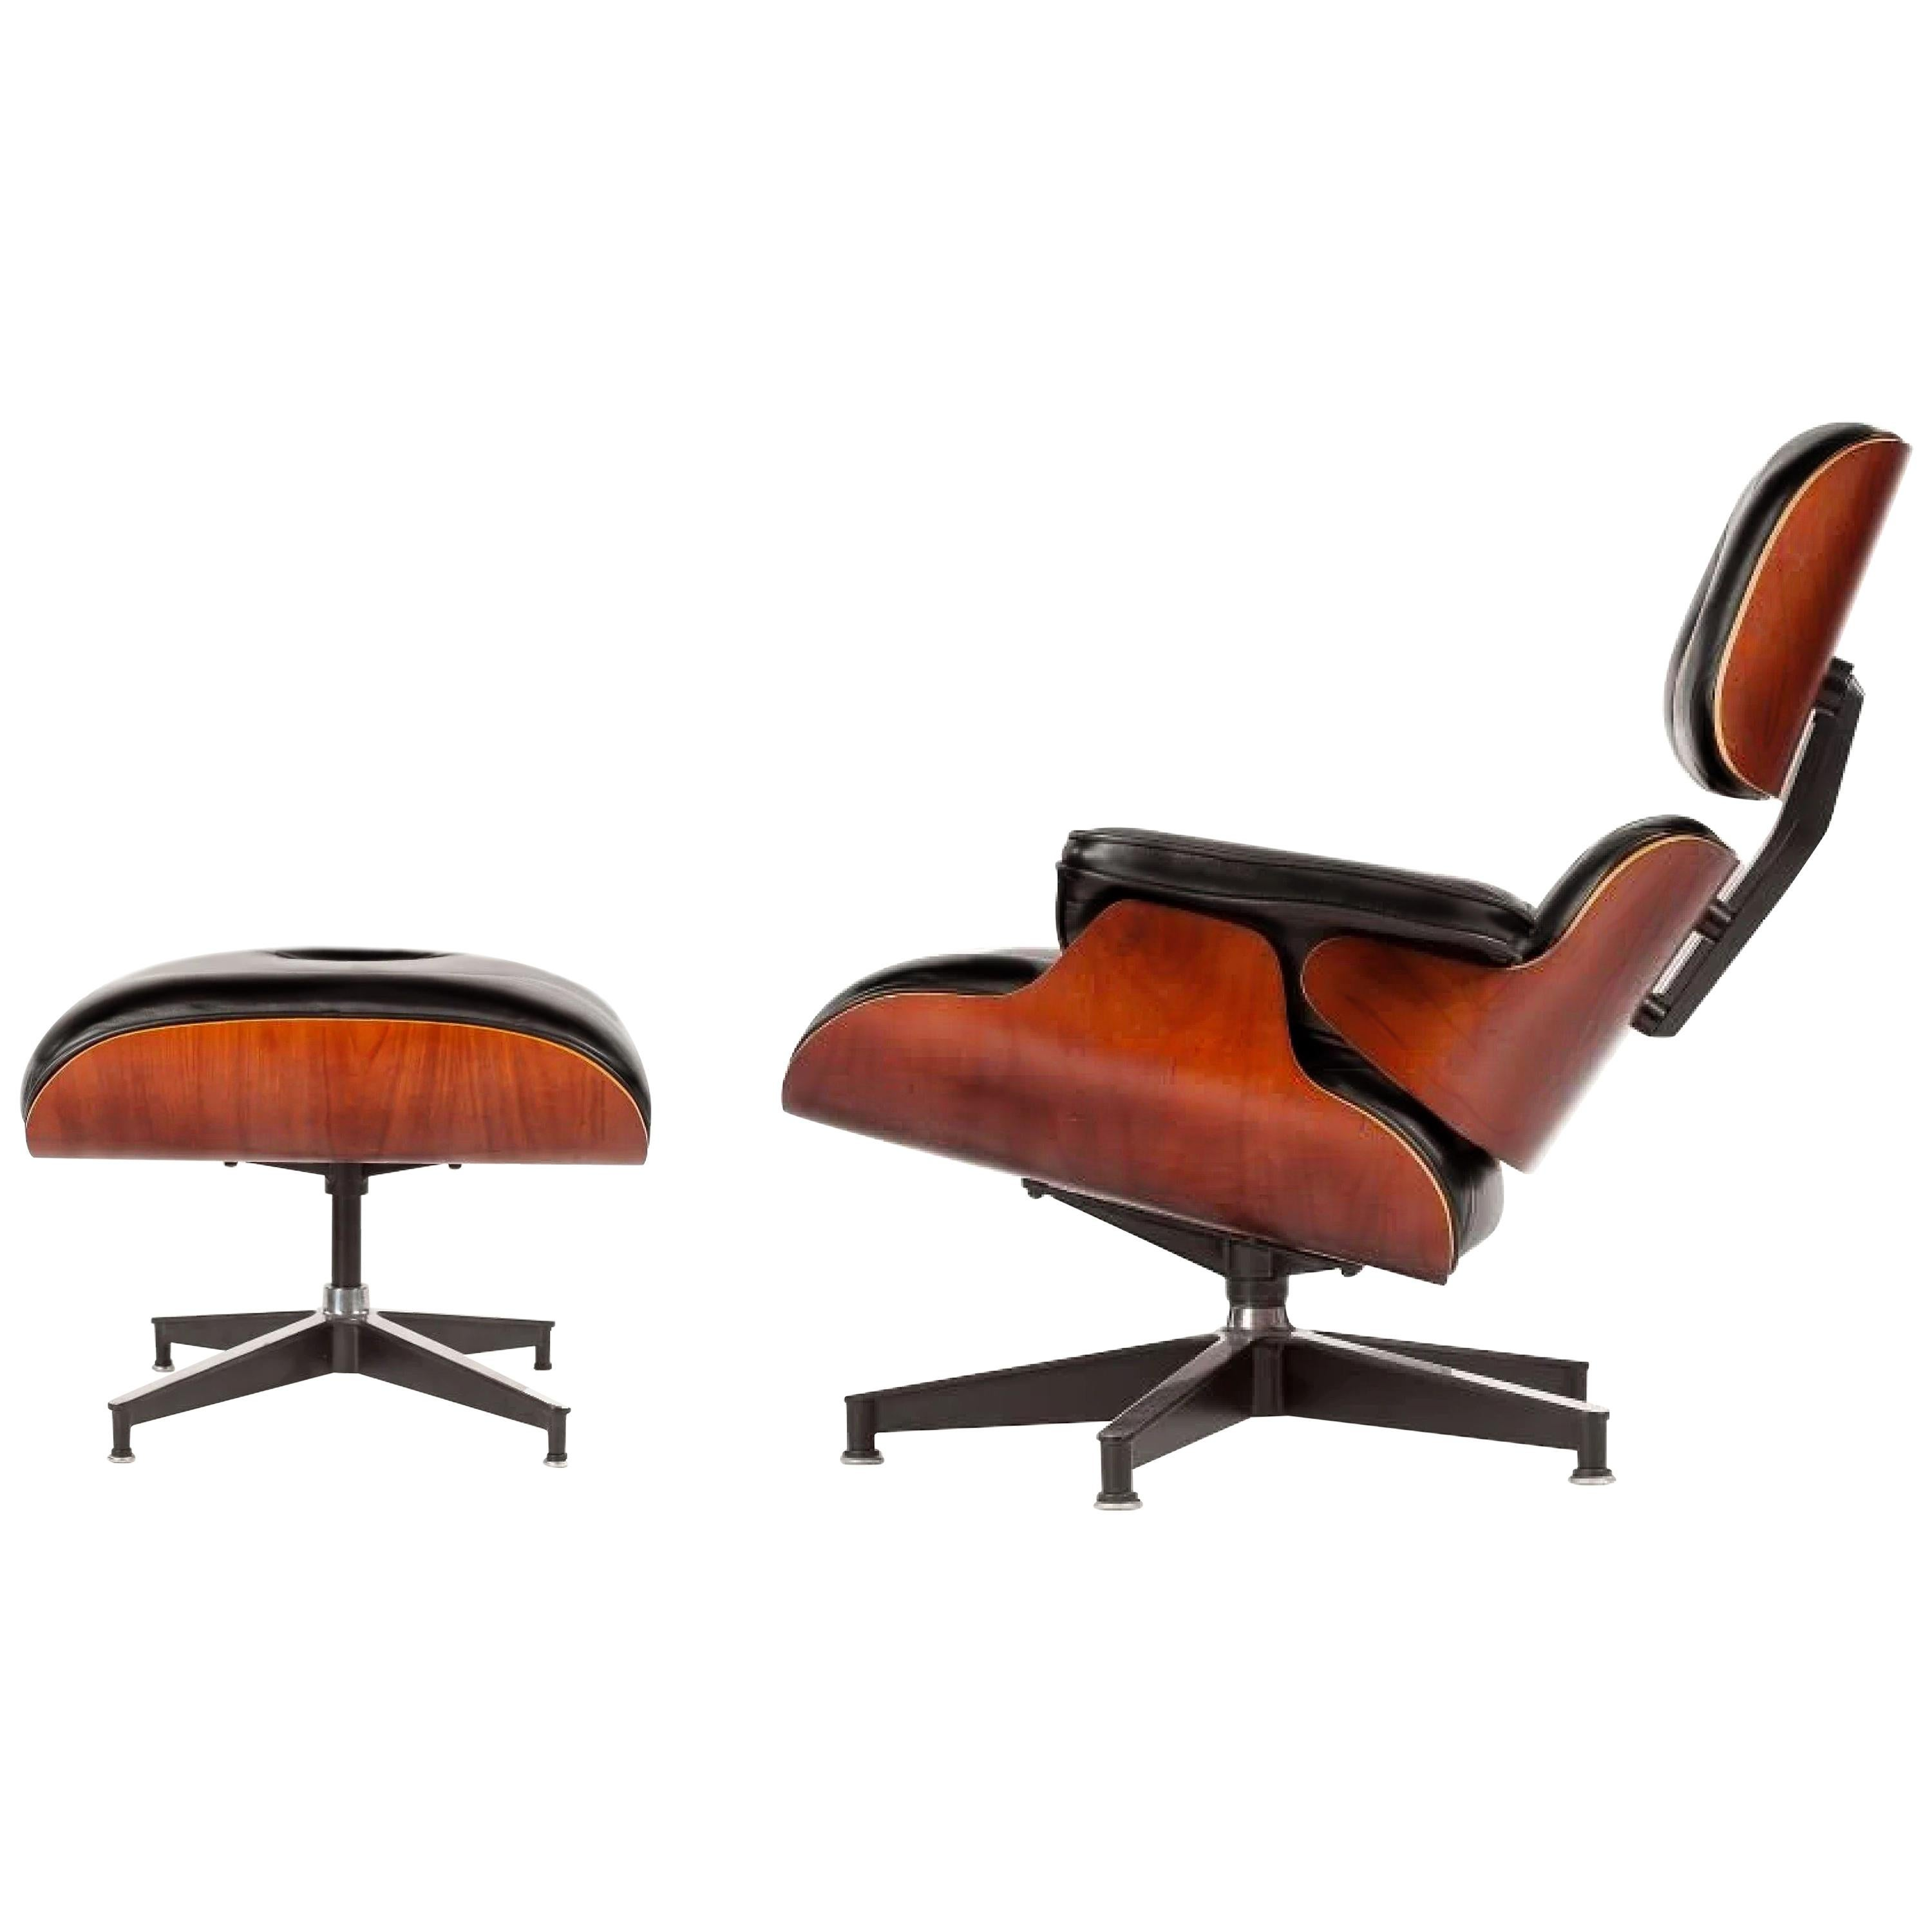 Charles, Ray Eames Lounge Chair and Ottoman, Herman Miller, 50th Anniv., Ltd Ed